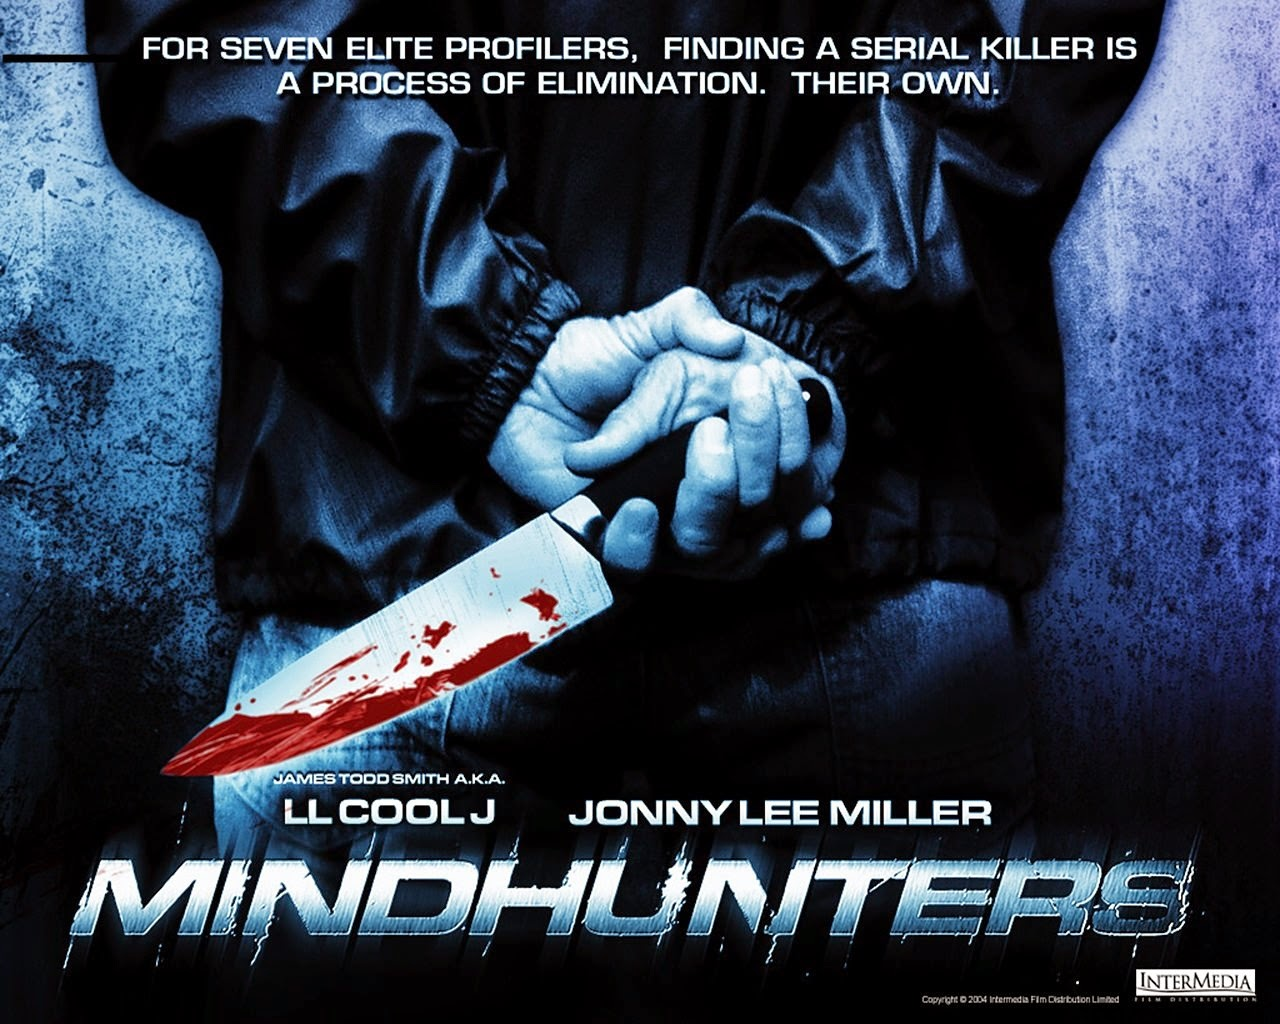 Mindhunters The Oscar Favorite